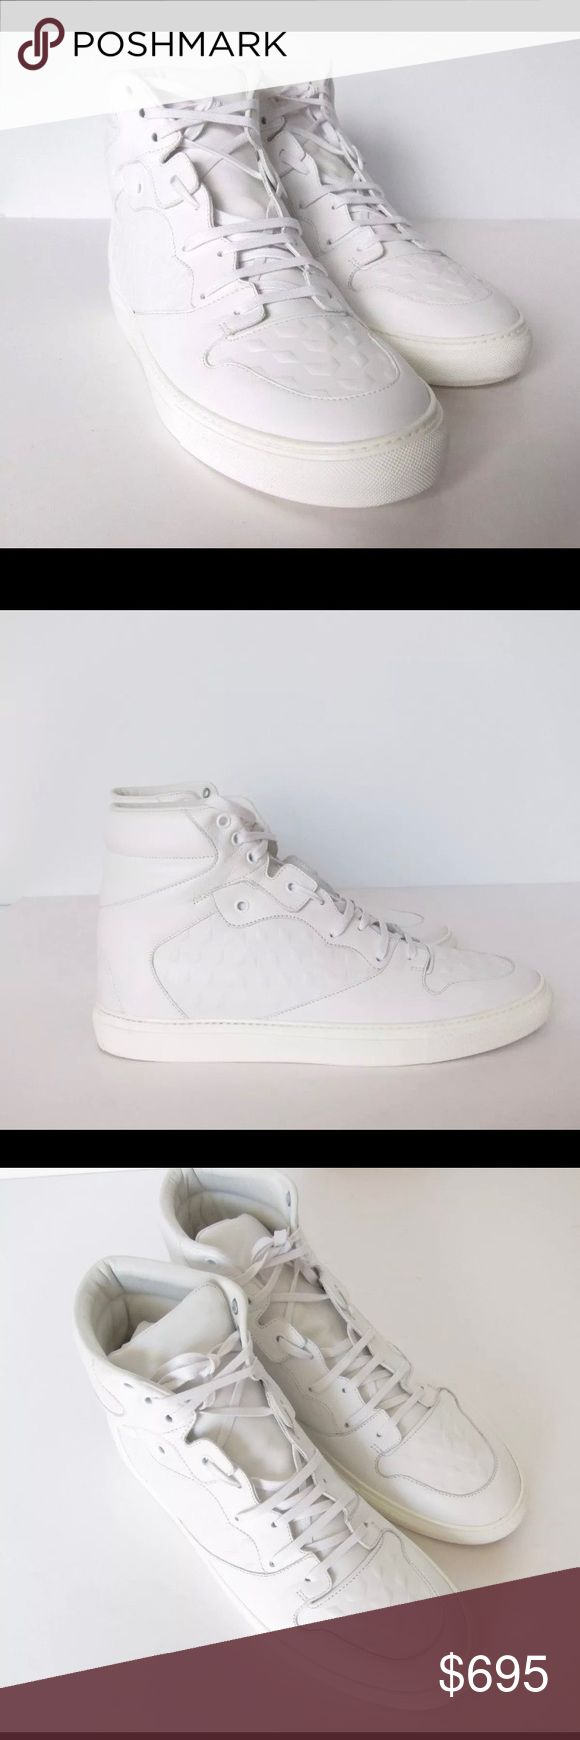 NWTS Balenciaga White Sneakers NEW/UNWORN Balenciaga White Leather Sport dipping Hi-top Sneakers. Nobody fuses sportswear and luxury more successfully than Balenciaga, as these eye-catching sneakers truly demonstrate. They've been constructed in Italy from smooth white leather with rubberized trims for a slick finish.                    .   **RETAILS FOR $775 +TAX** Balenciaga Shoes Sneakers